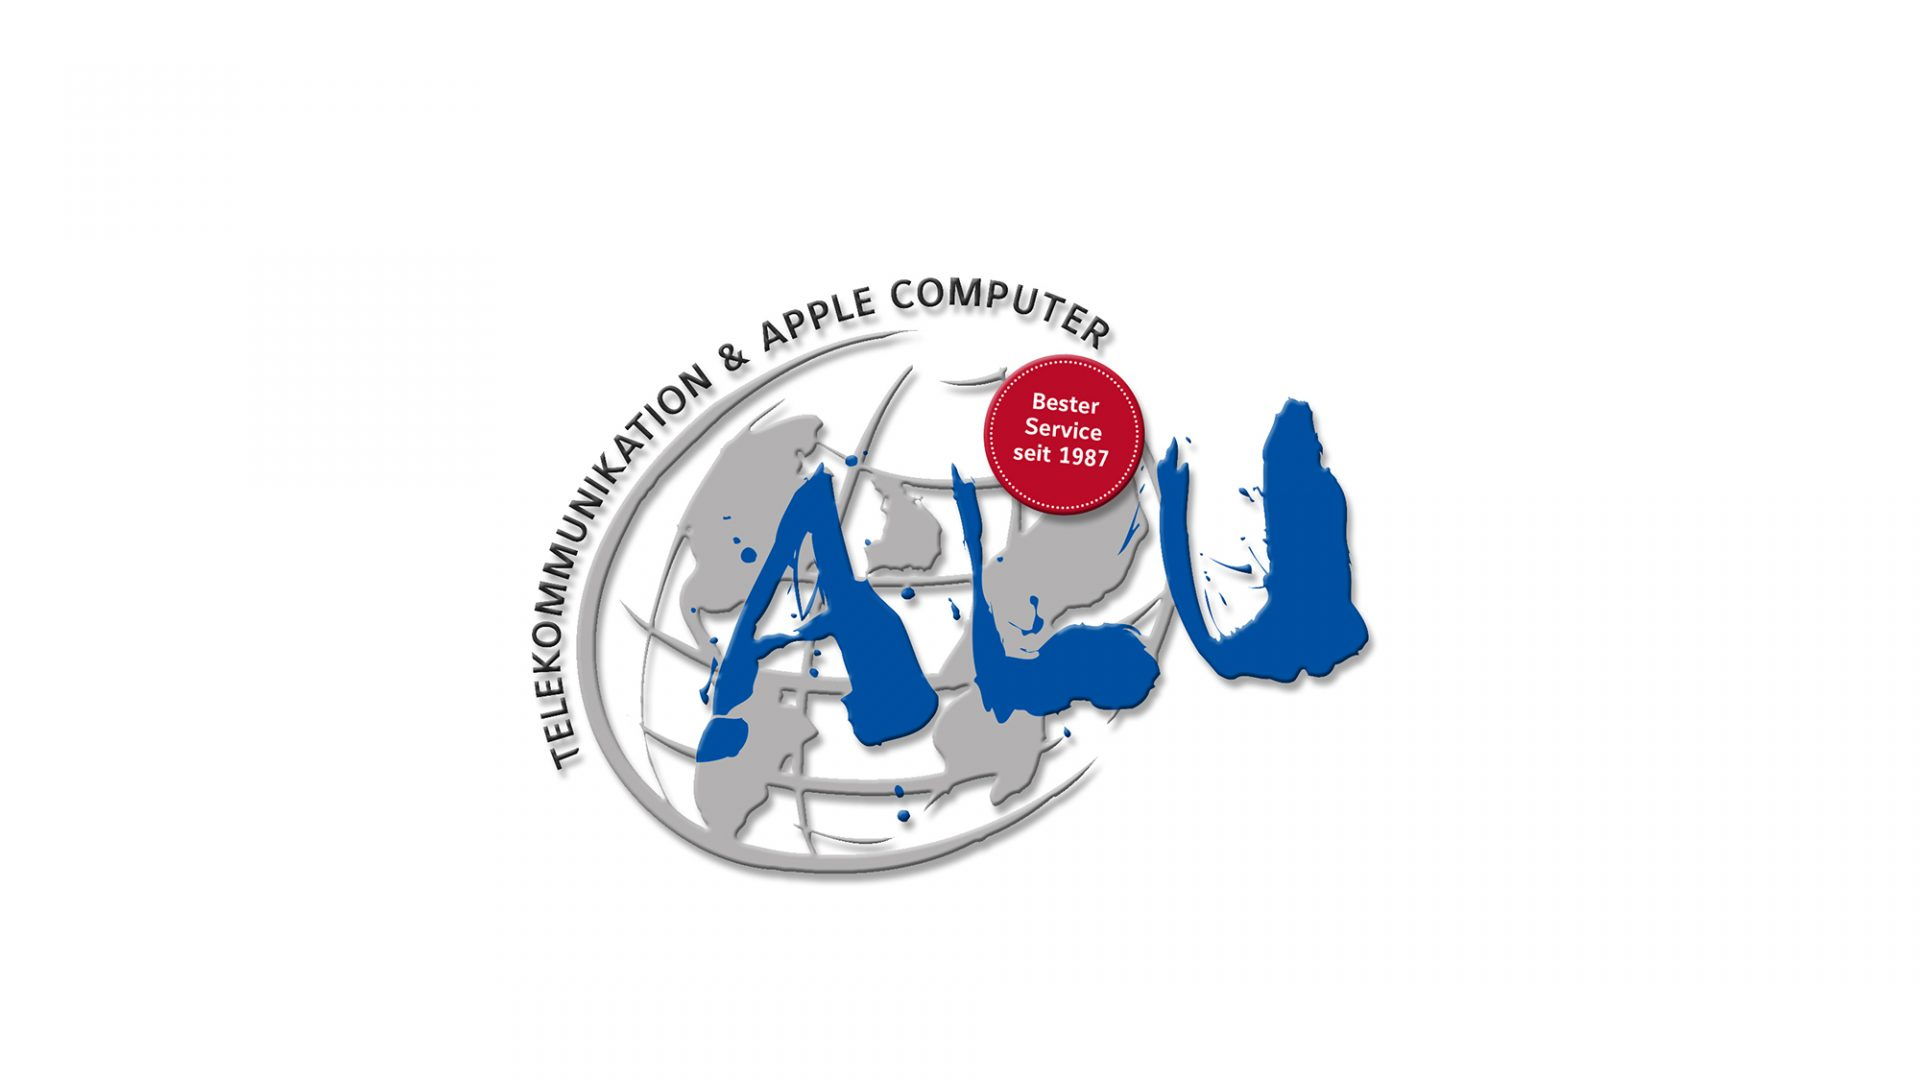 Alu GmbH